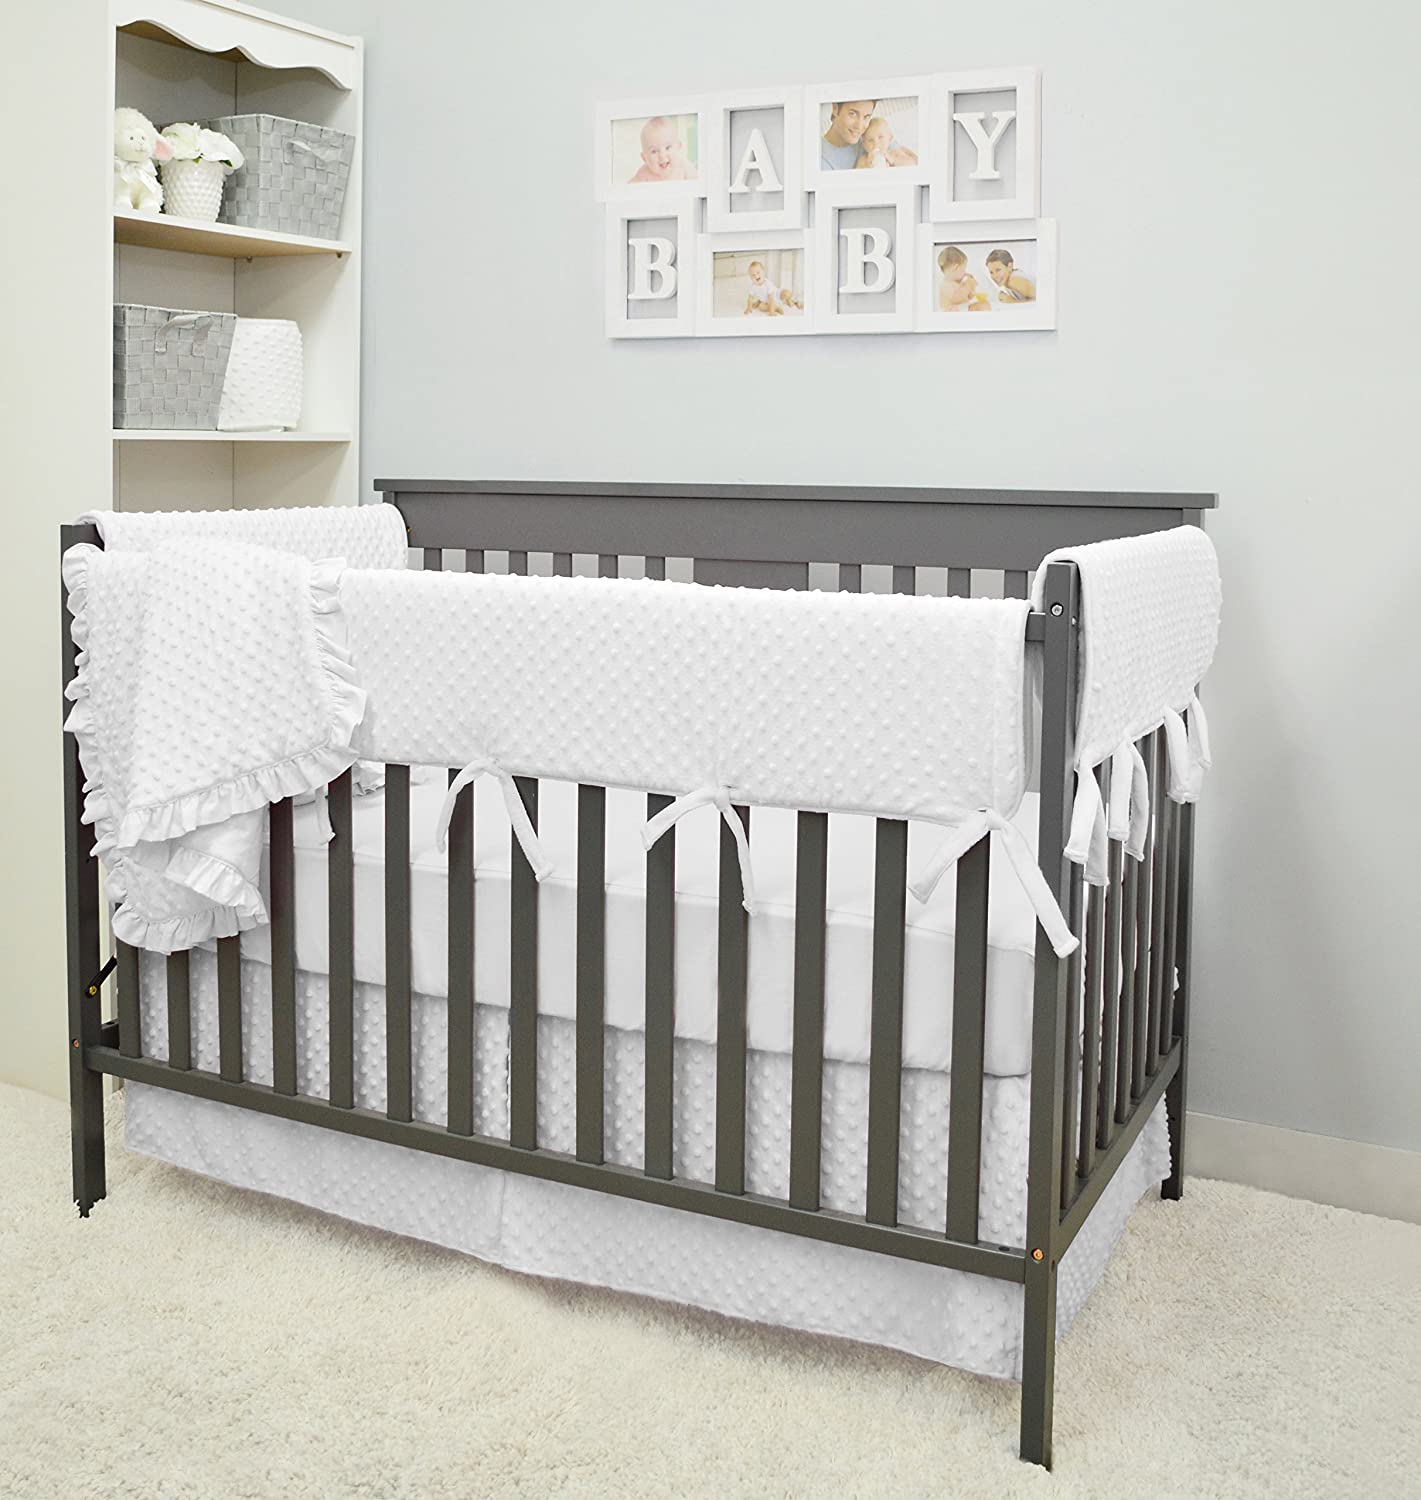 American Baby Company Heavenly Soft 6 Piece Crib Rail Bedding Set, White, for Boys and Girls